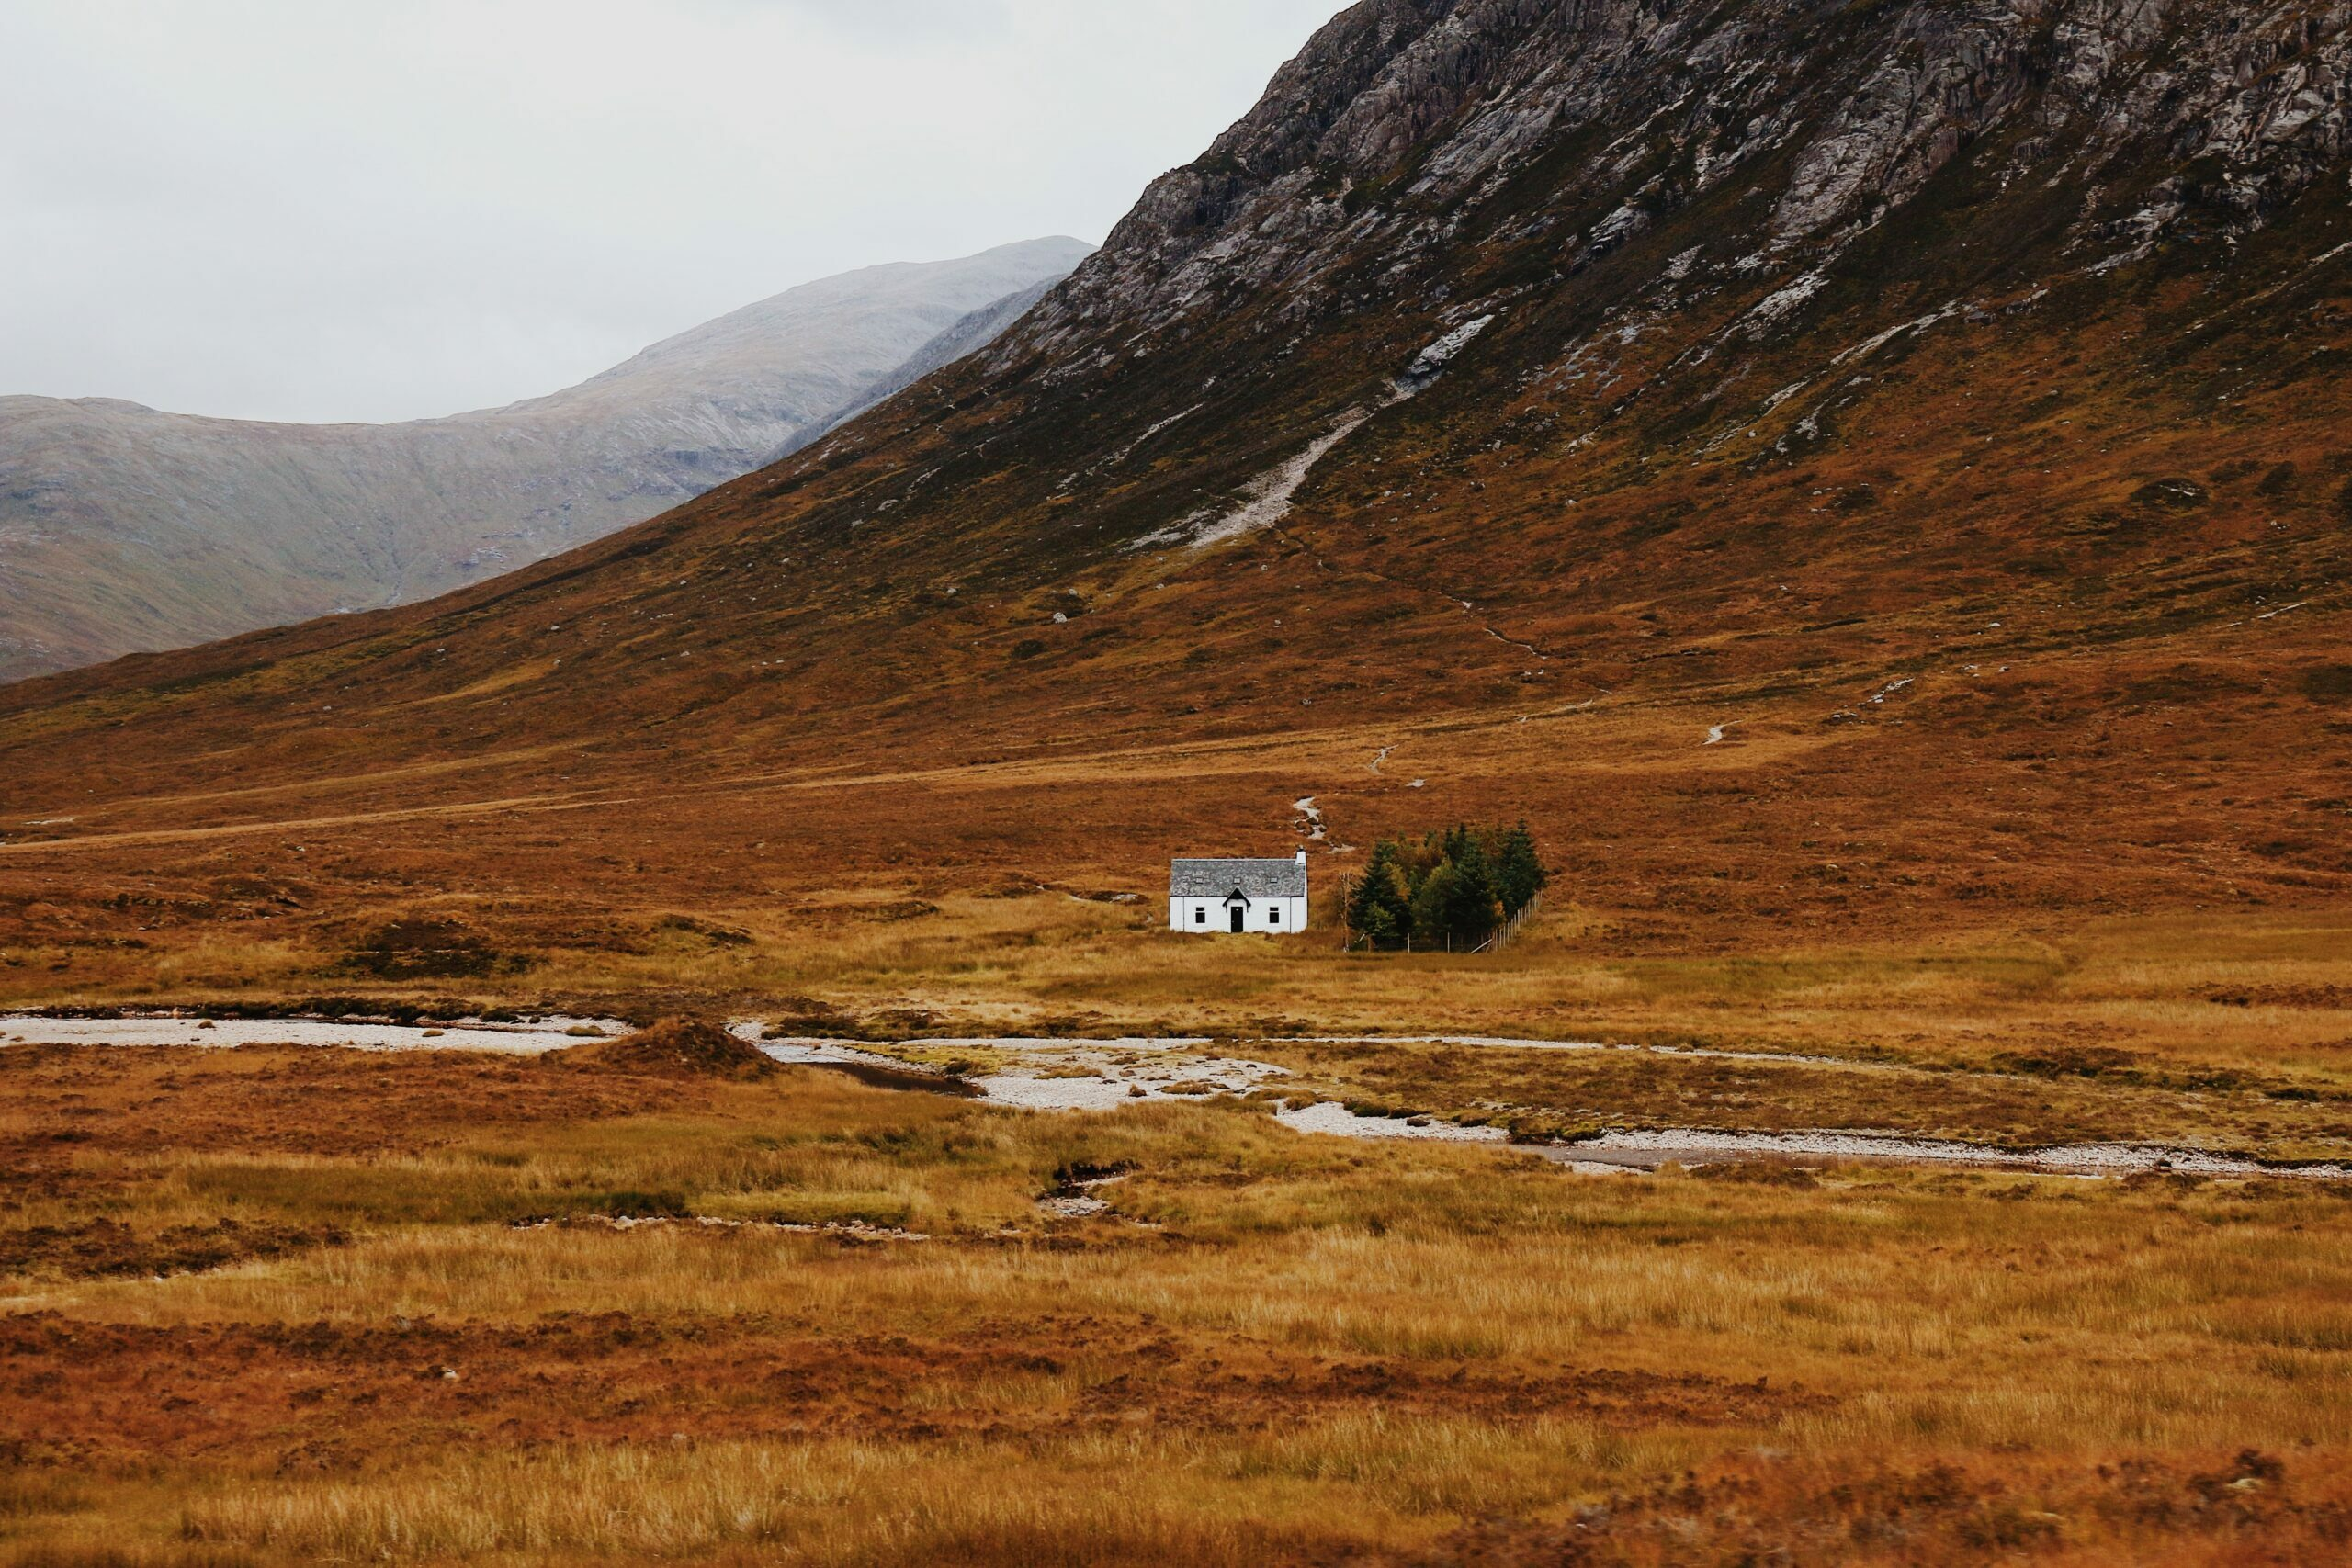 Talk/together in Scotland: independence, sectarianism and rural isolation